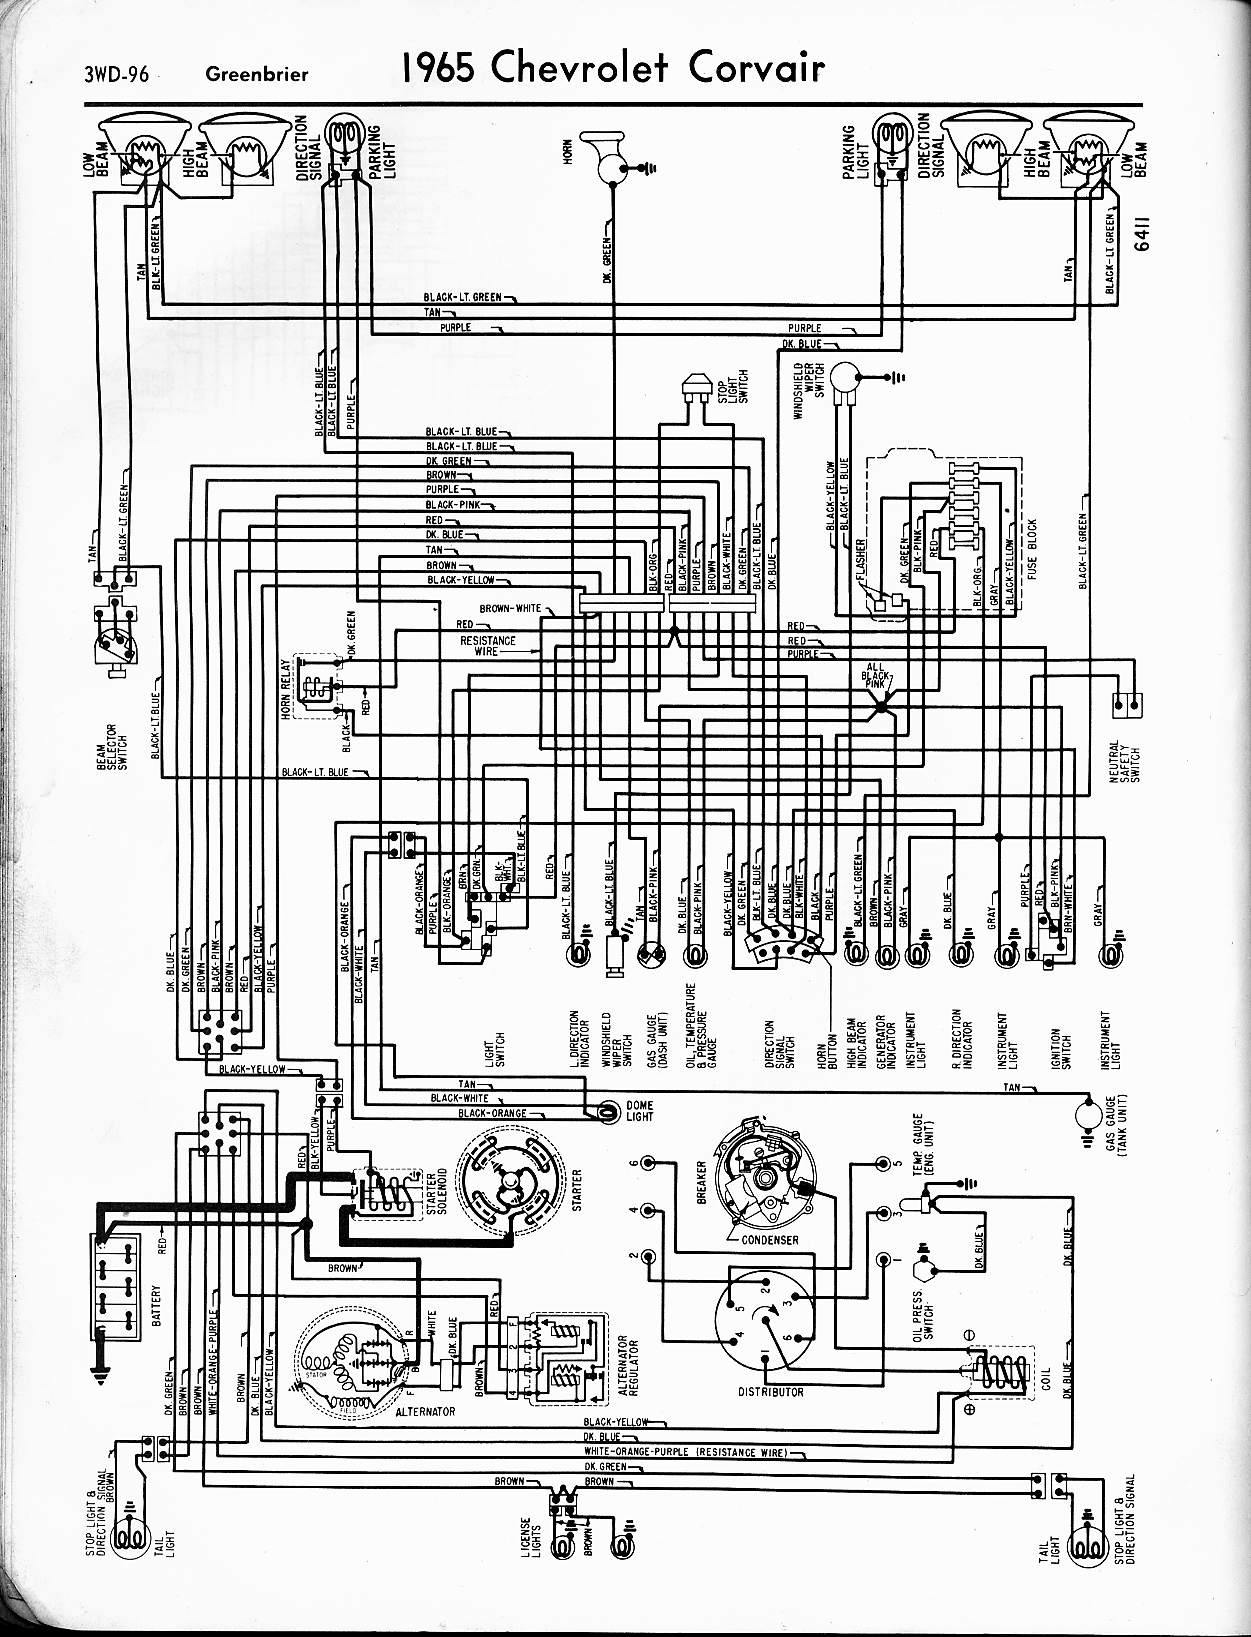 65 impala project car | joy studio design gallery - best ... 1964 corvair wiring diagram